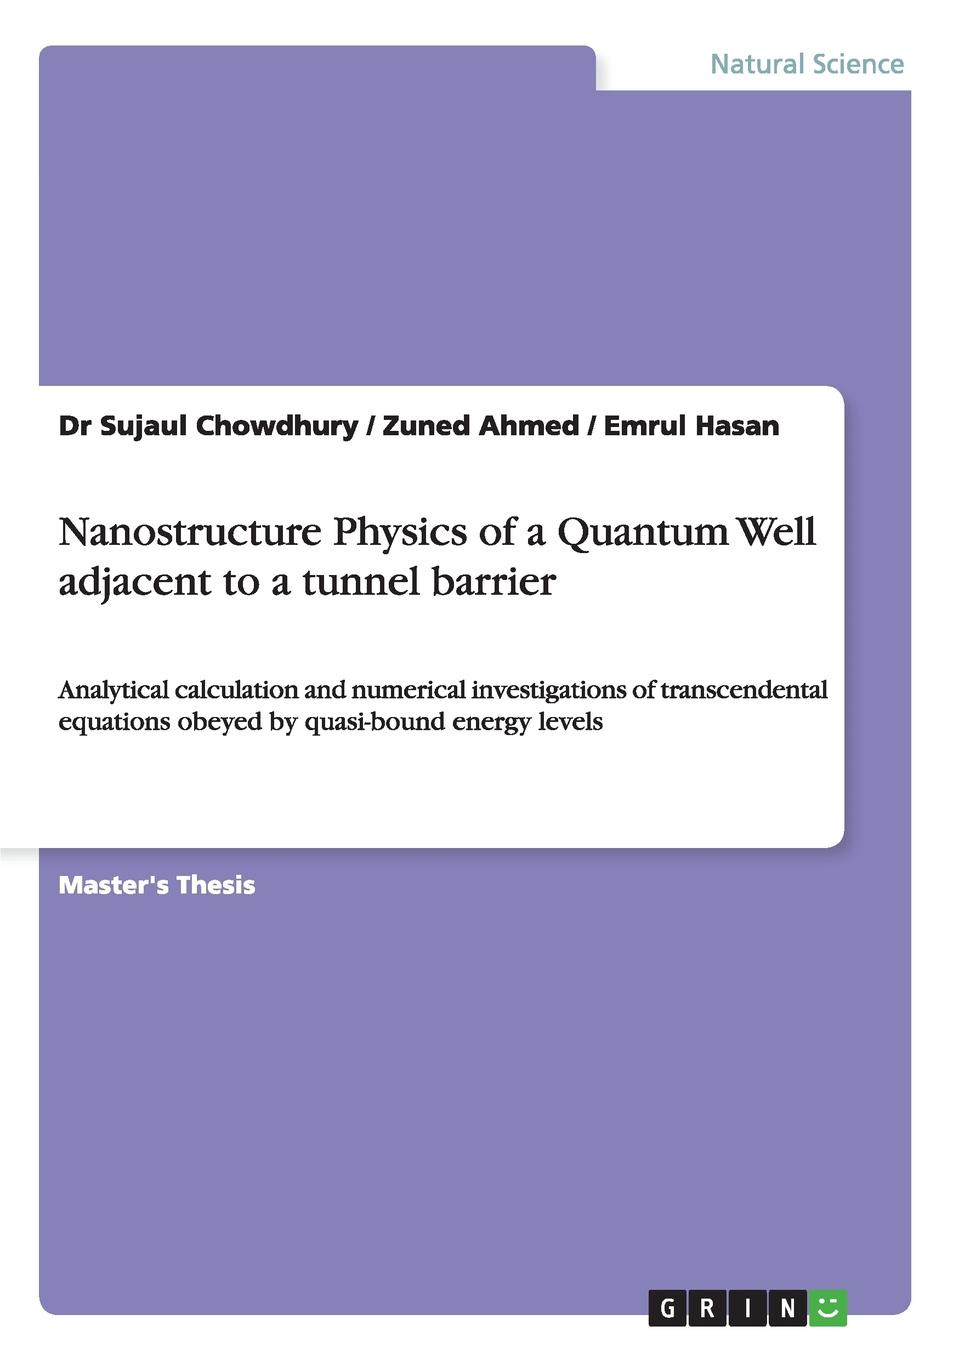 лучшая цена Dr Sujaul Chowdhury, Zuned Ahmed, Emrul Hasan Nanostructure Physics of a Quantum Well adjacent to a tunnel barrier